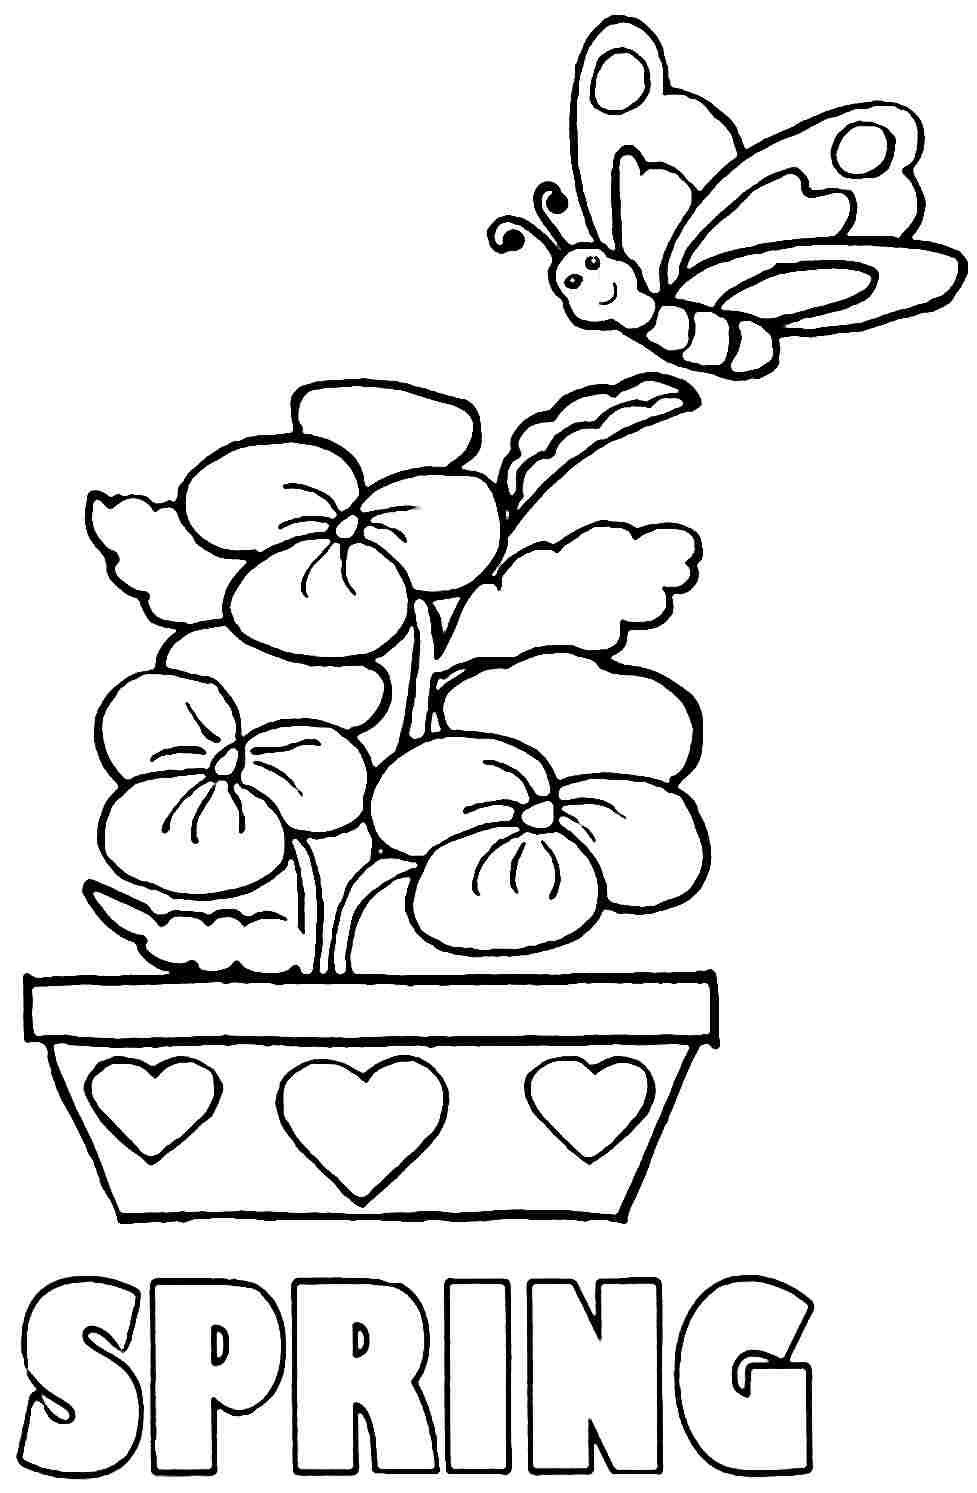 Spring Fling Coloring Sheets For Kids  Spring Coloring Sheets Preschool Printable Books The Art